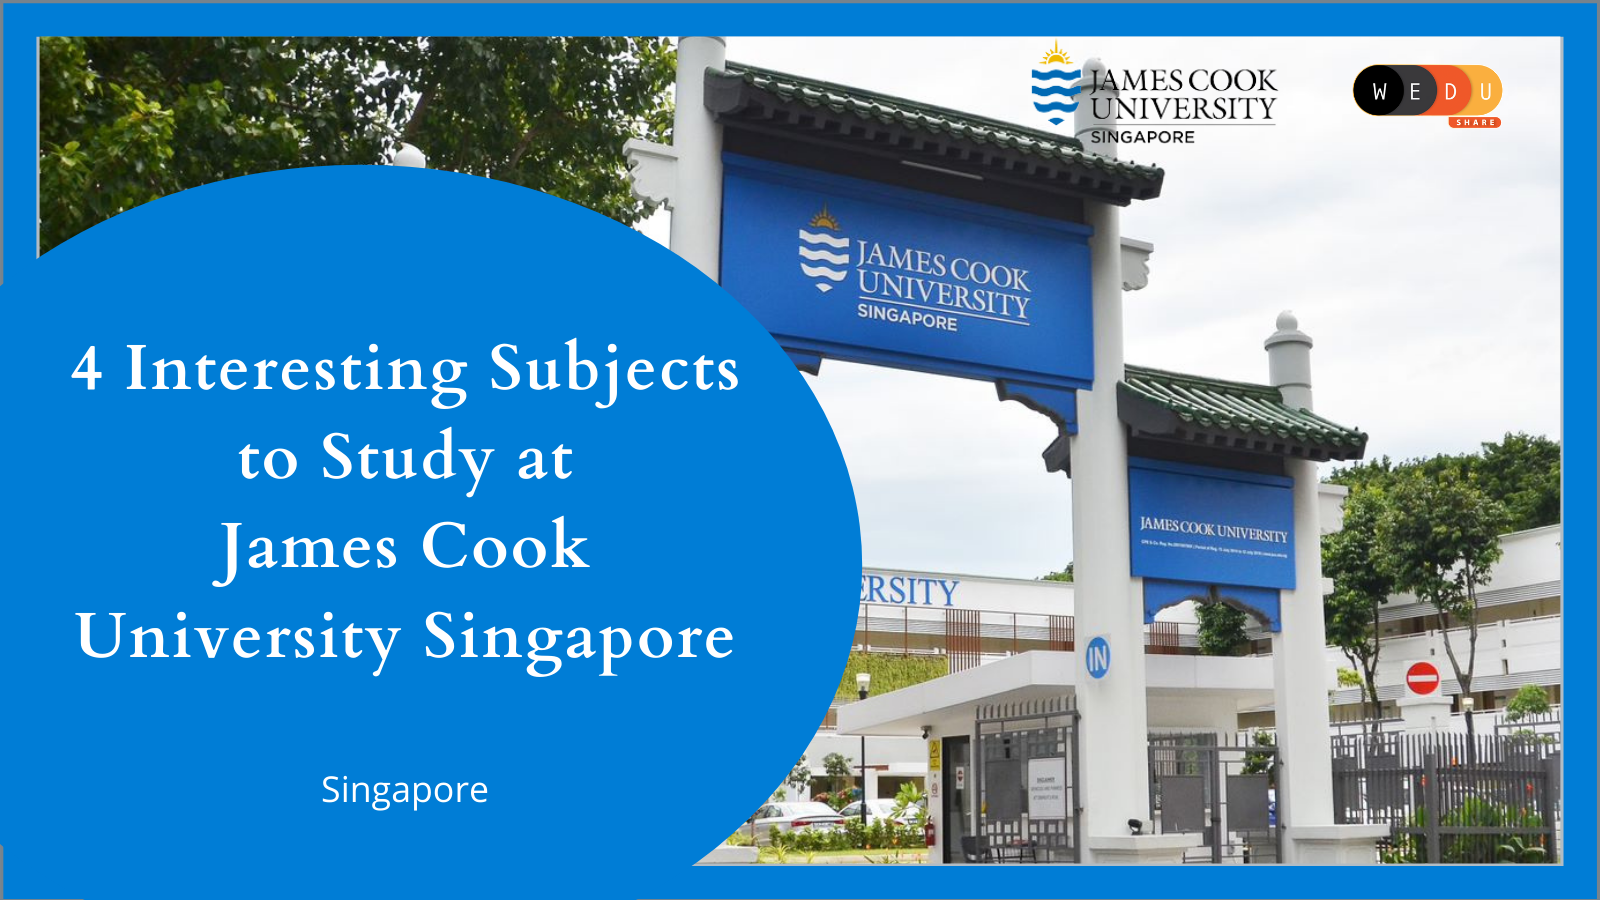 4 Interesting Subjects to Study at James Cook University Singapore